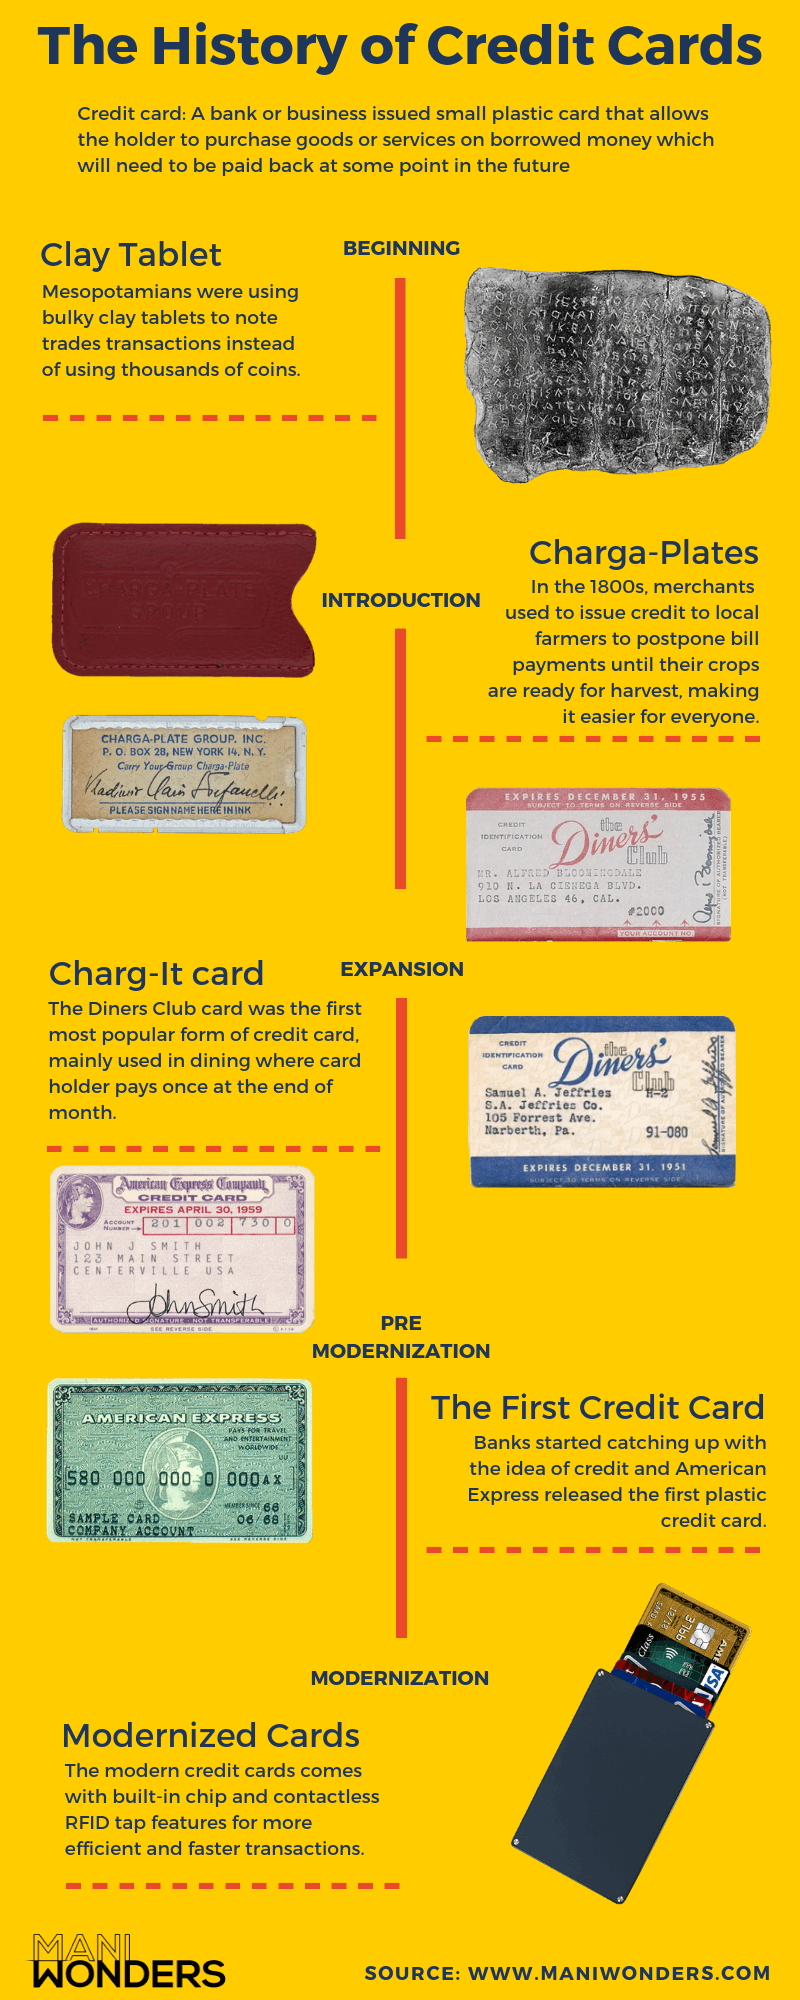 The-History-of-Credit-Cards-infographic-plaza